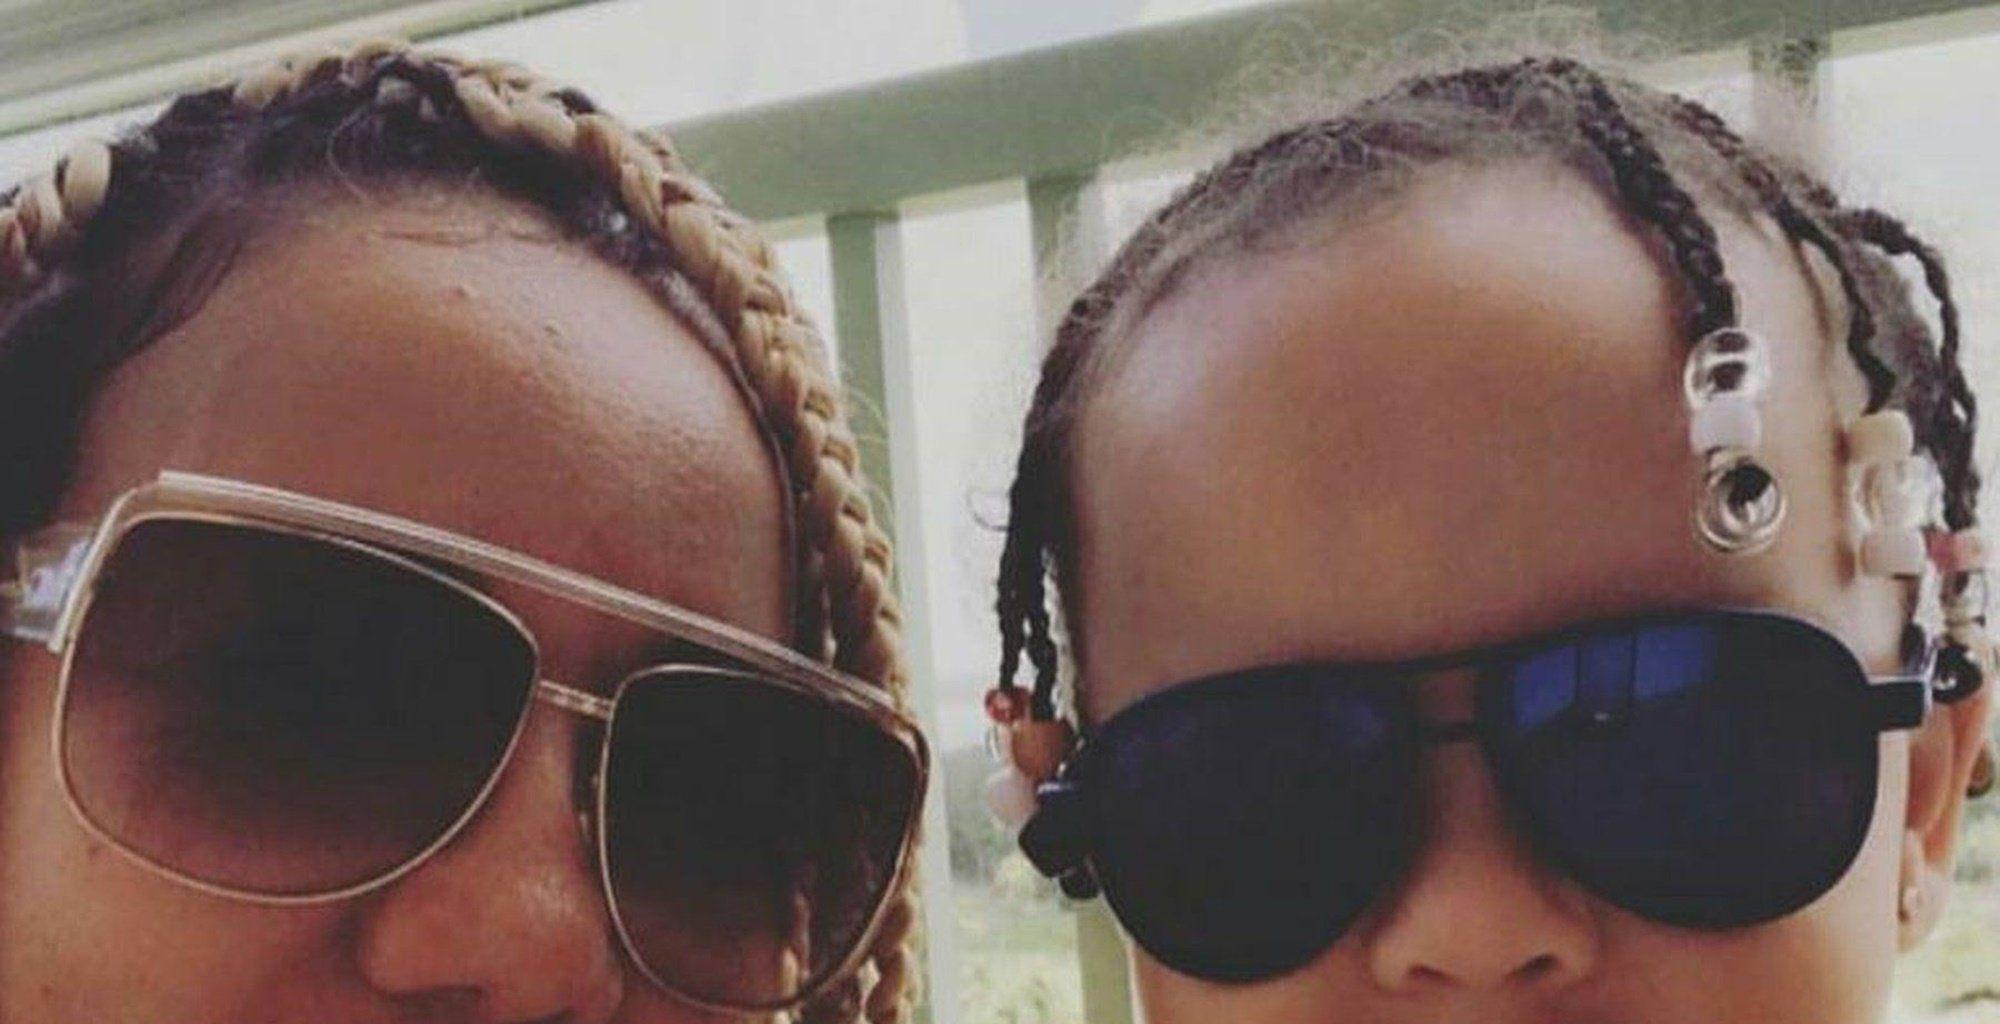 Tiny Harris And T.I. Bond With Baby Heiress In Adorable Holiday Video - See How!